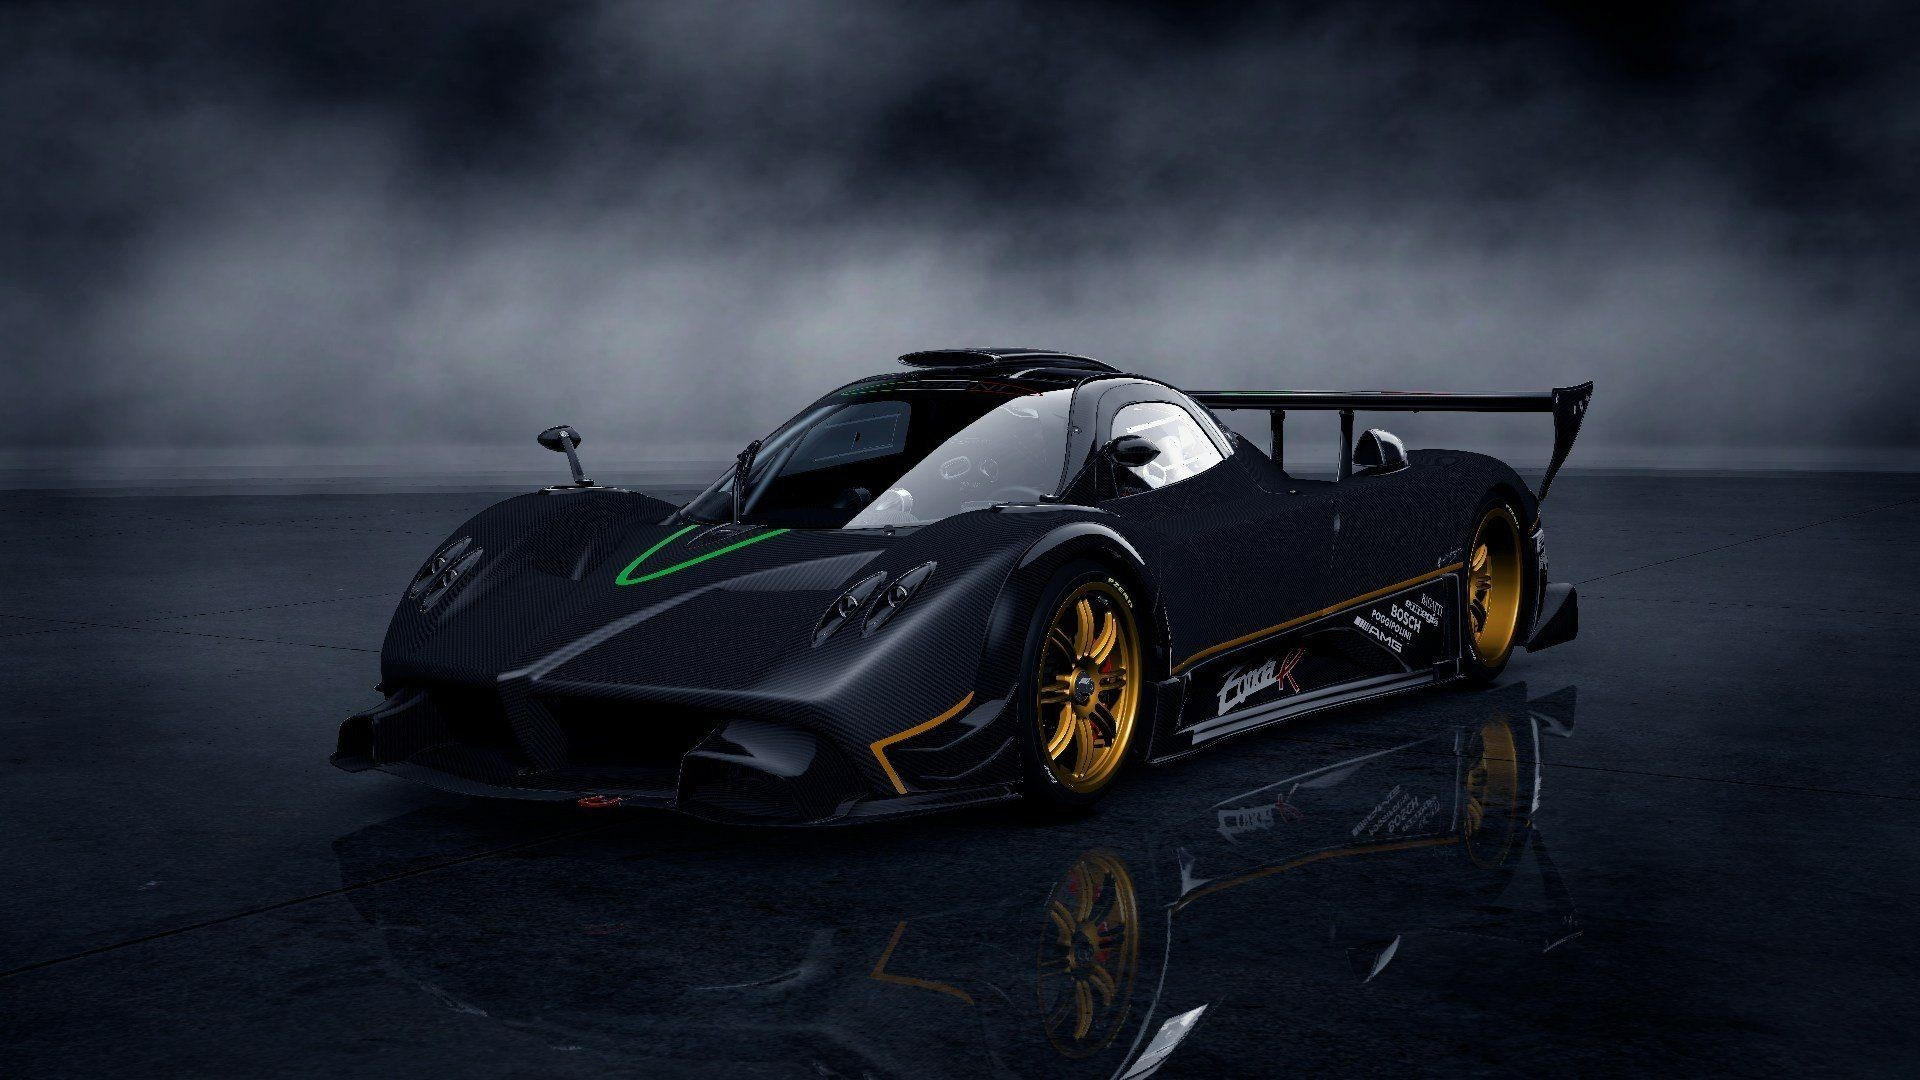 1920x1080 Vehicles Pagani Zonda R wallpapers Desktop Phone Tablet